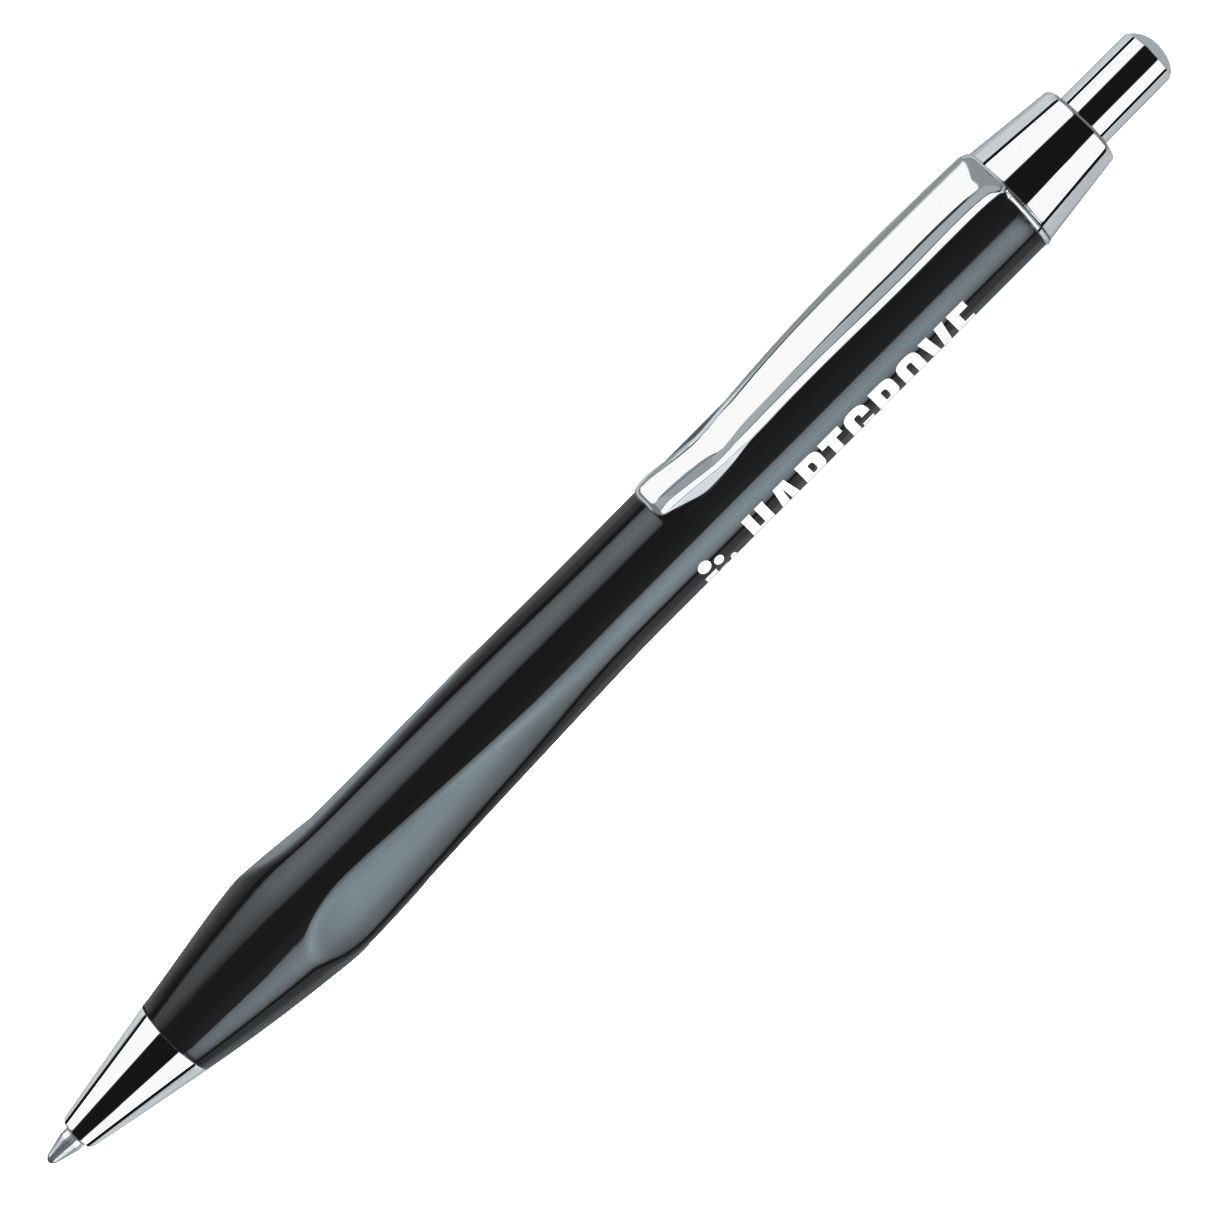 Writing pen PNG image - PNG Pen